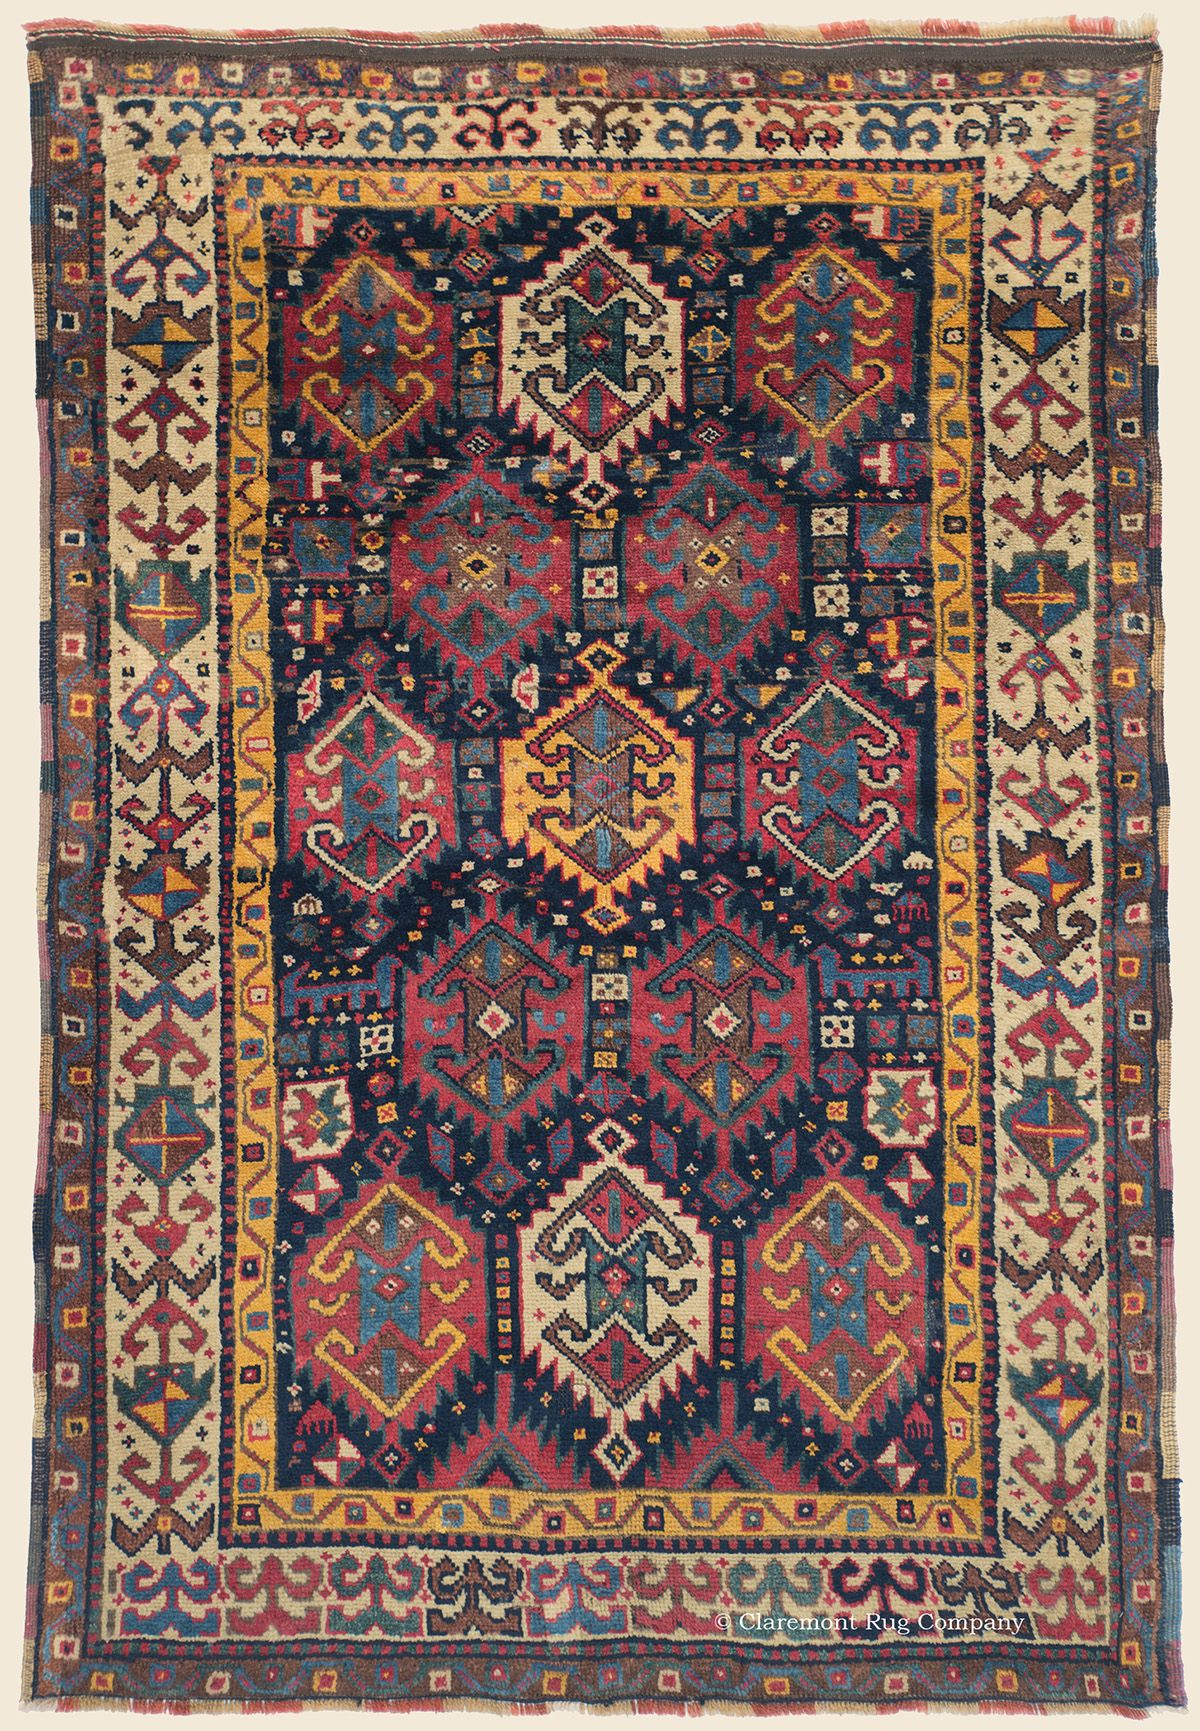 Exquisite 19th Early 20th Century Rugs From Tribal Rugs To City Oversize Carpets Elite San Francisco Bay A Colorful Rugs Rainbow Rug Antique Persian Carpet